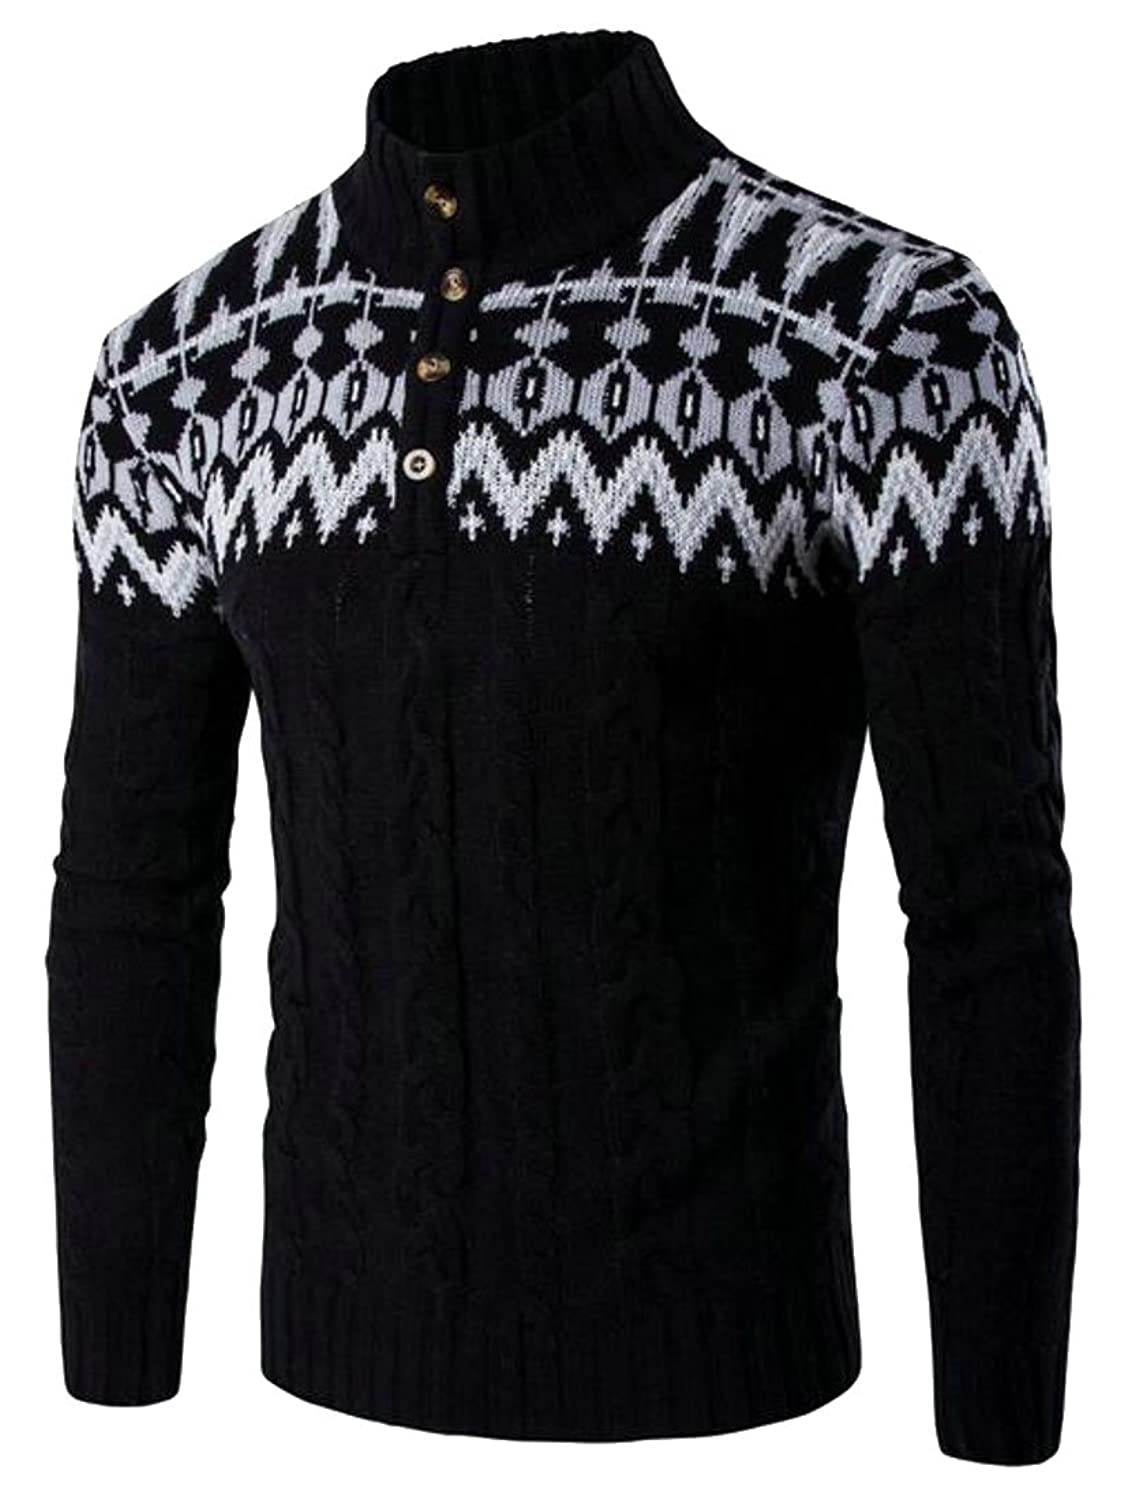 CBTLVSN Mens Knitting High Neck Solid Slim Long Sleeve Pullover Sweaters